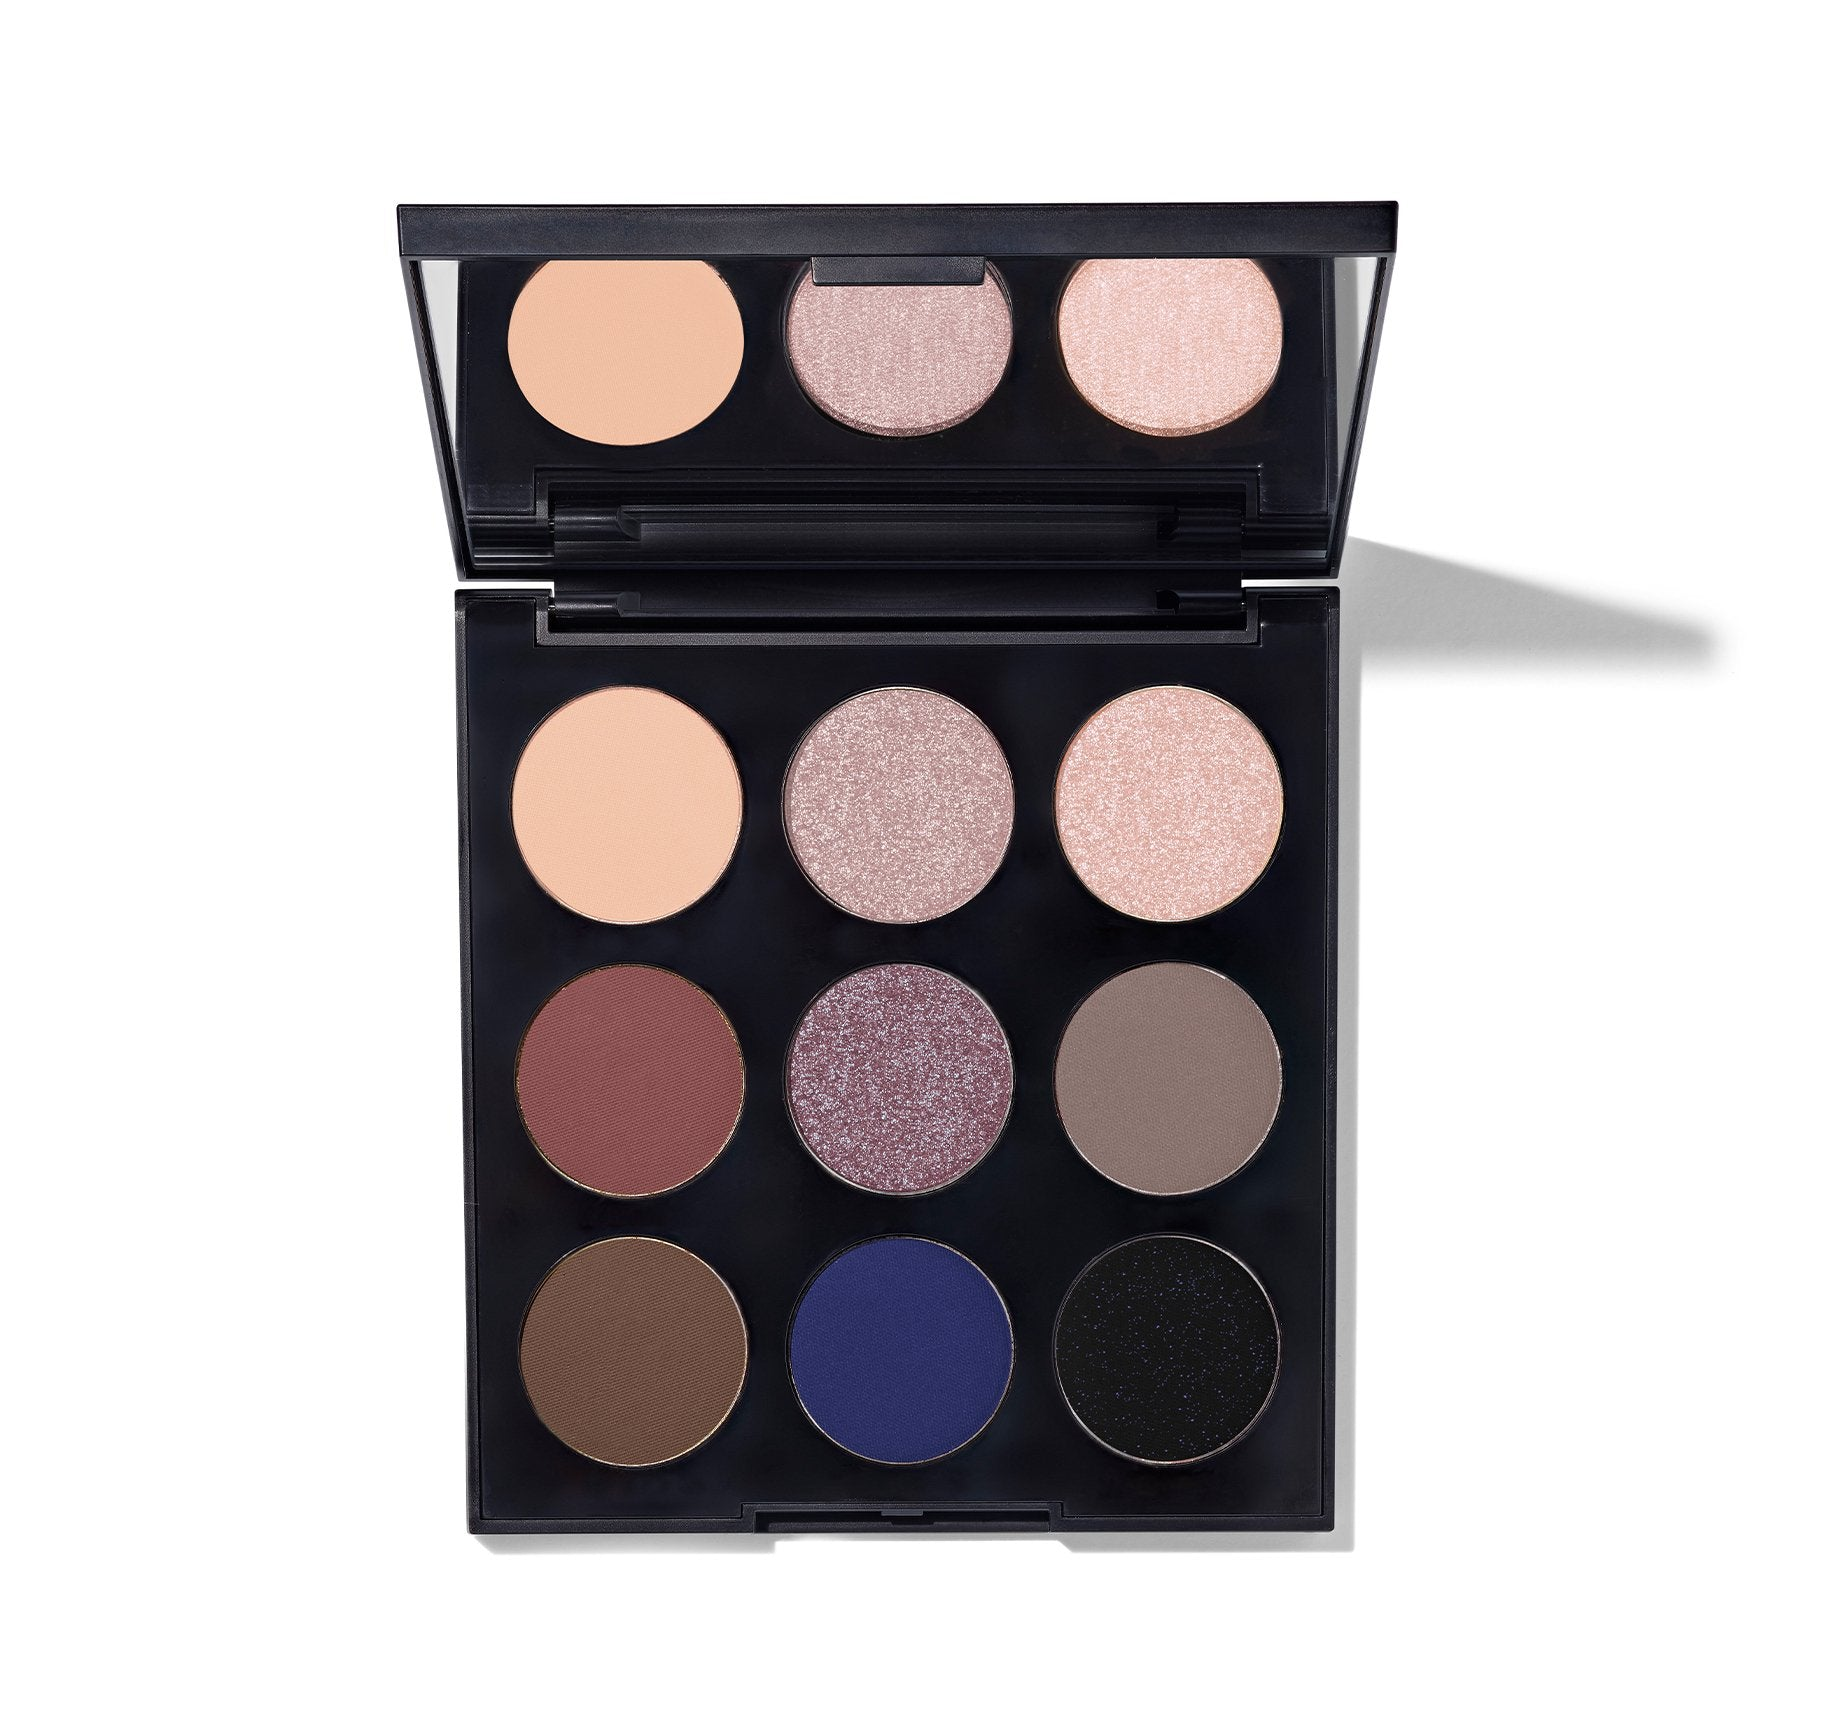 9S SO CHILL ARTISTRY PALETTE, view larger image